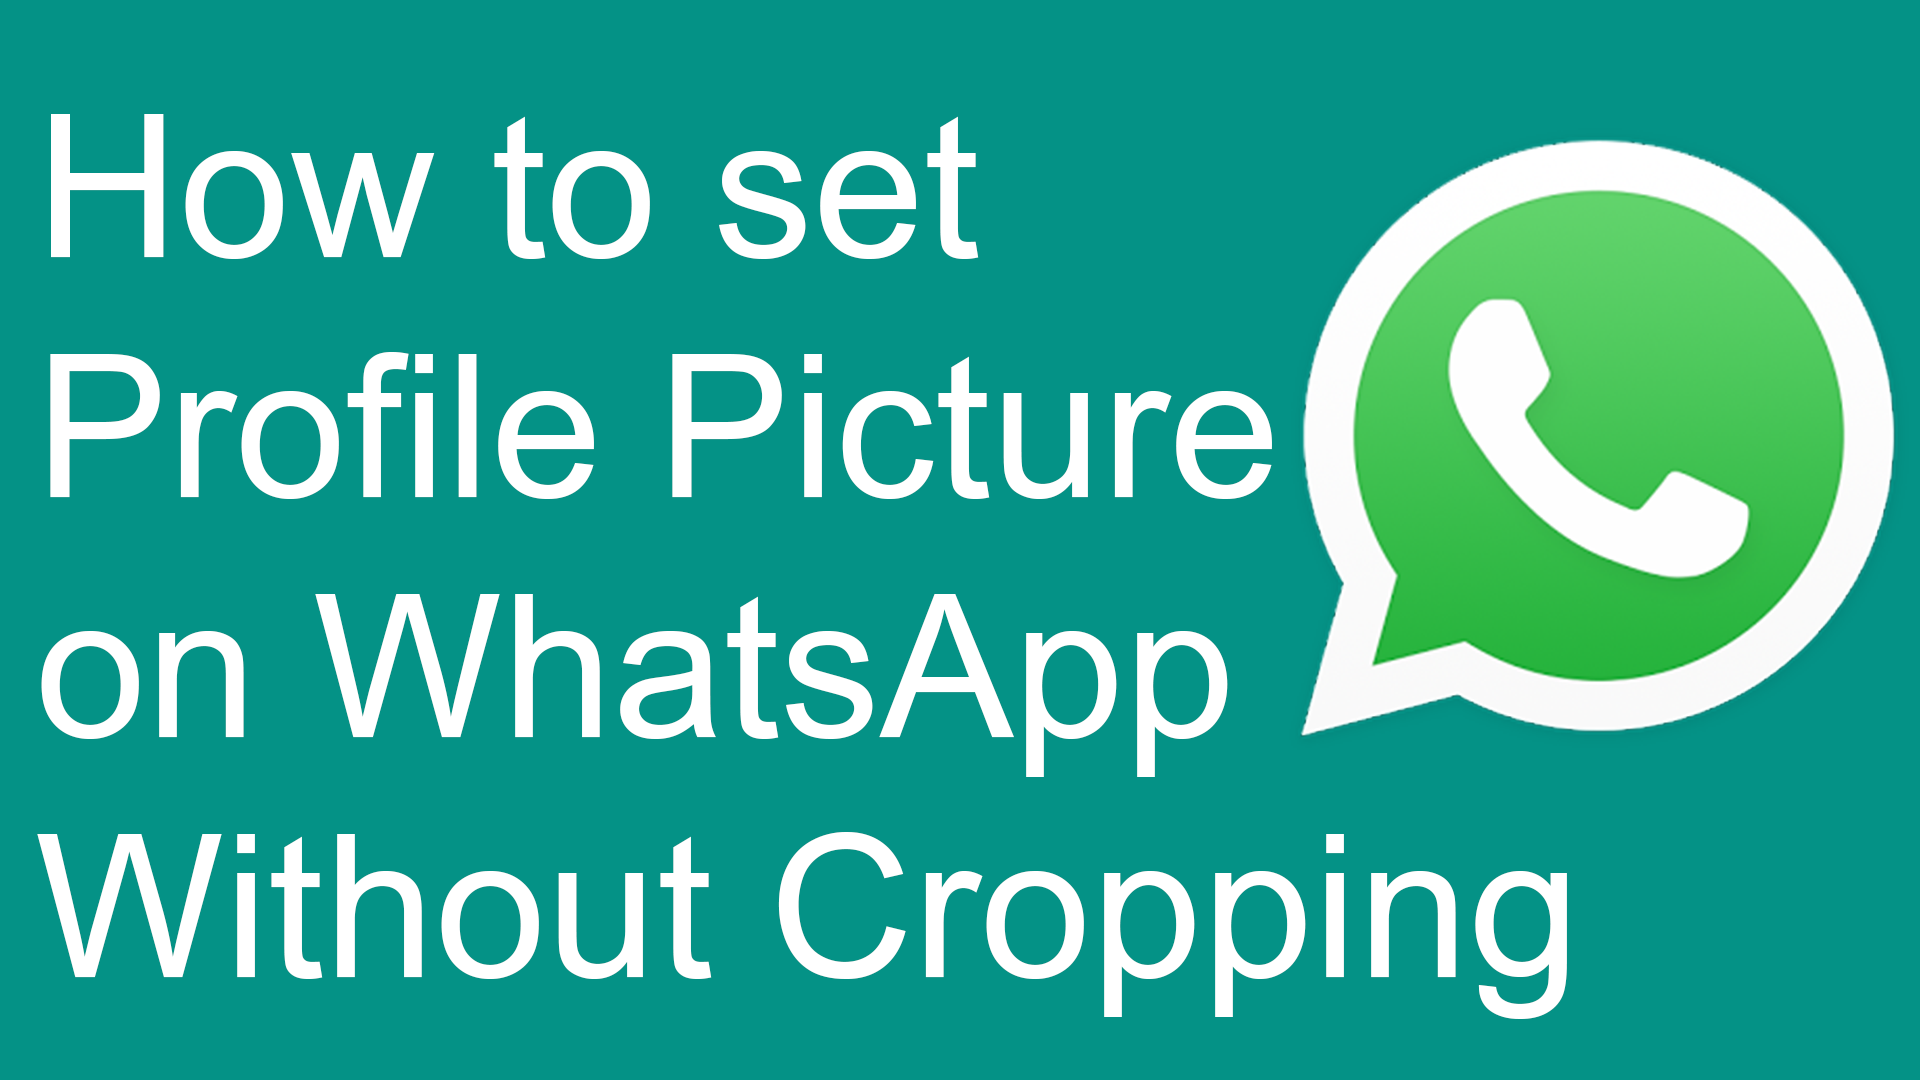 how-to-set-profile-picture-on-whatsapp-without-cropping